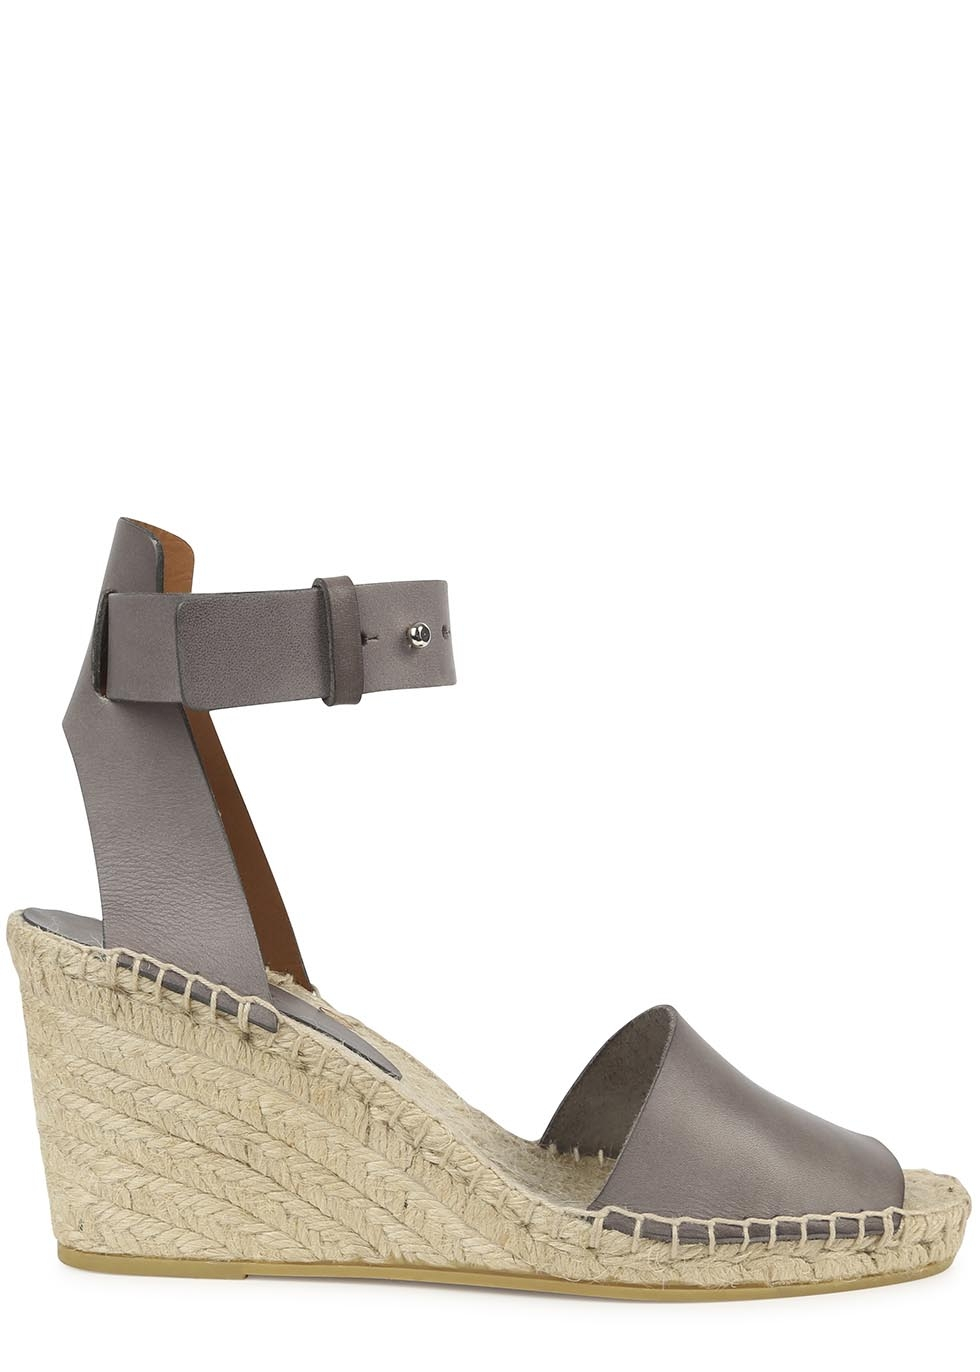 4ab851bc9de Vince Simona Grey Espadrille Wedge Sandals in Gray - Lyst